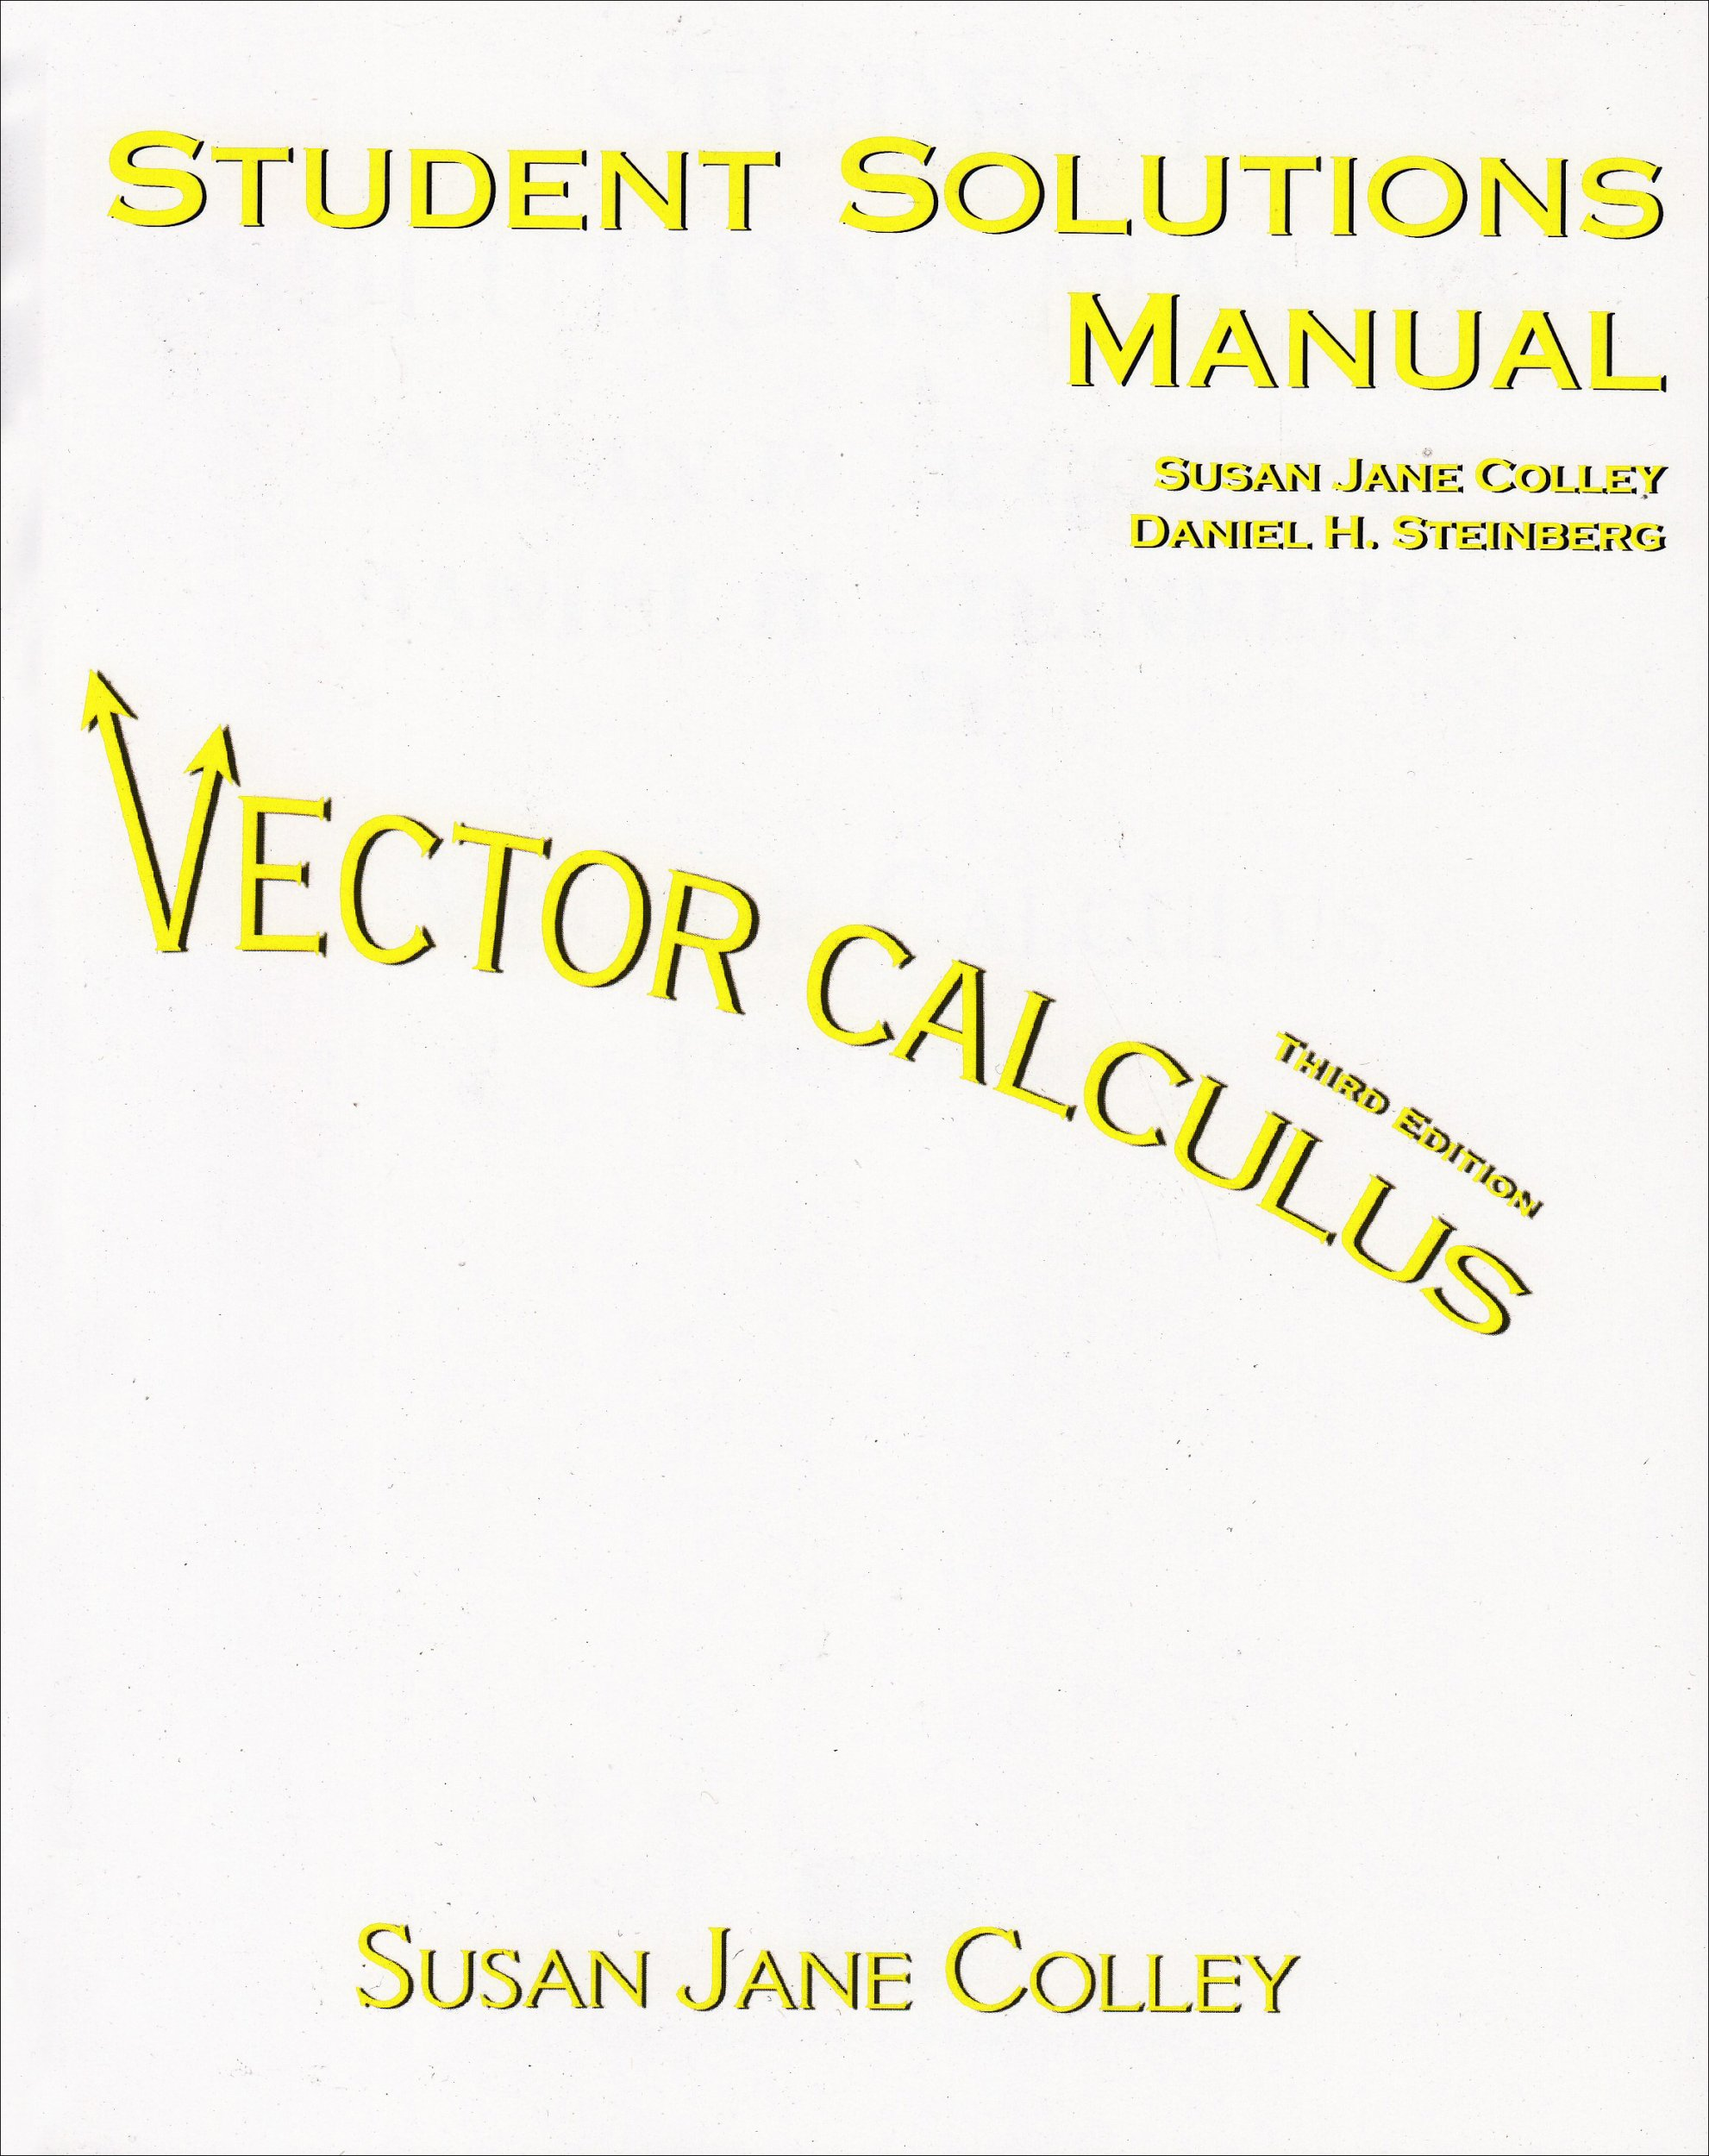 Buy Student Solutions Manual for Vector Calculus Book Online at Low Prices  in India   Student Solutions Manual for Vector Calculus Reviews & Ratings  ...